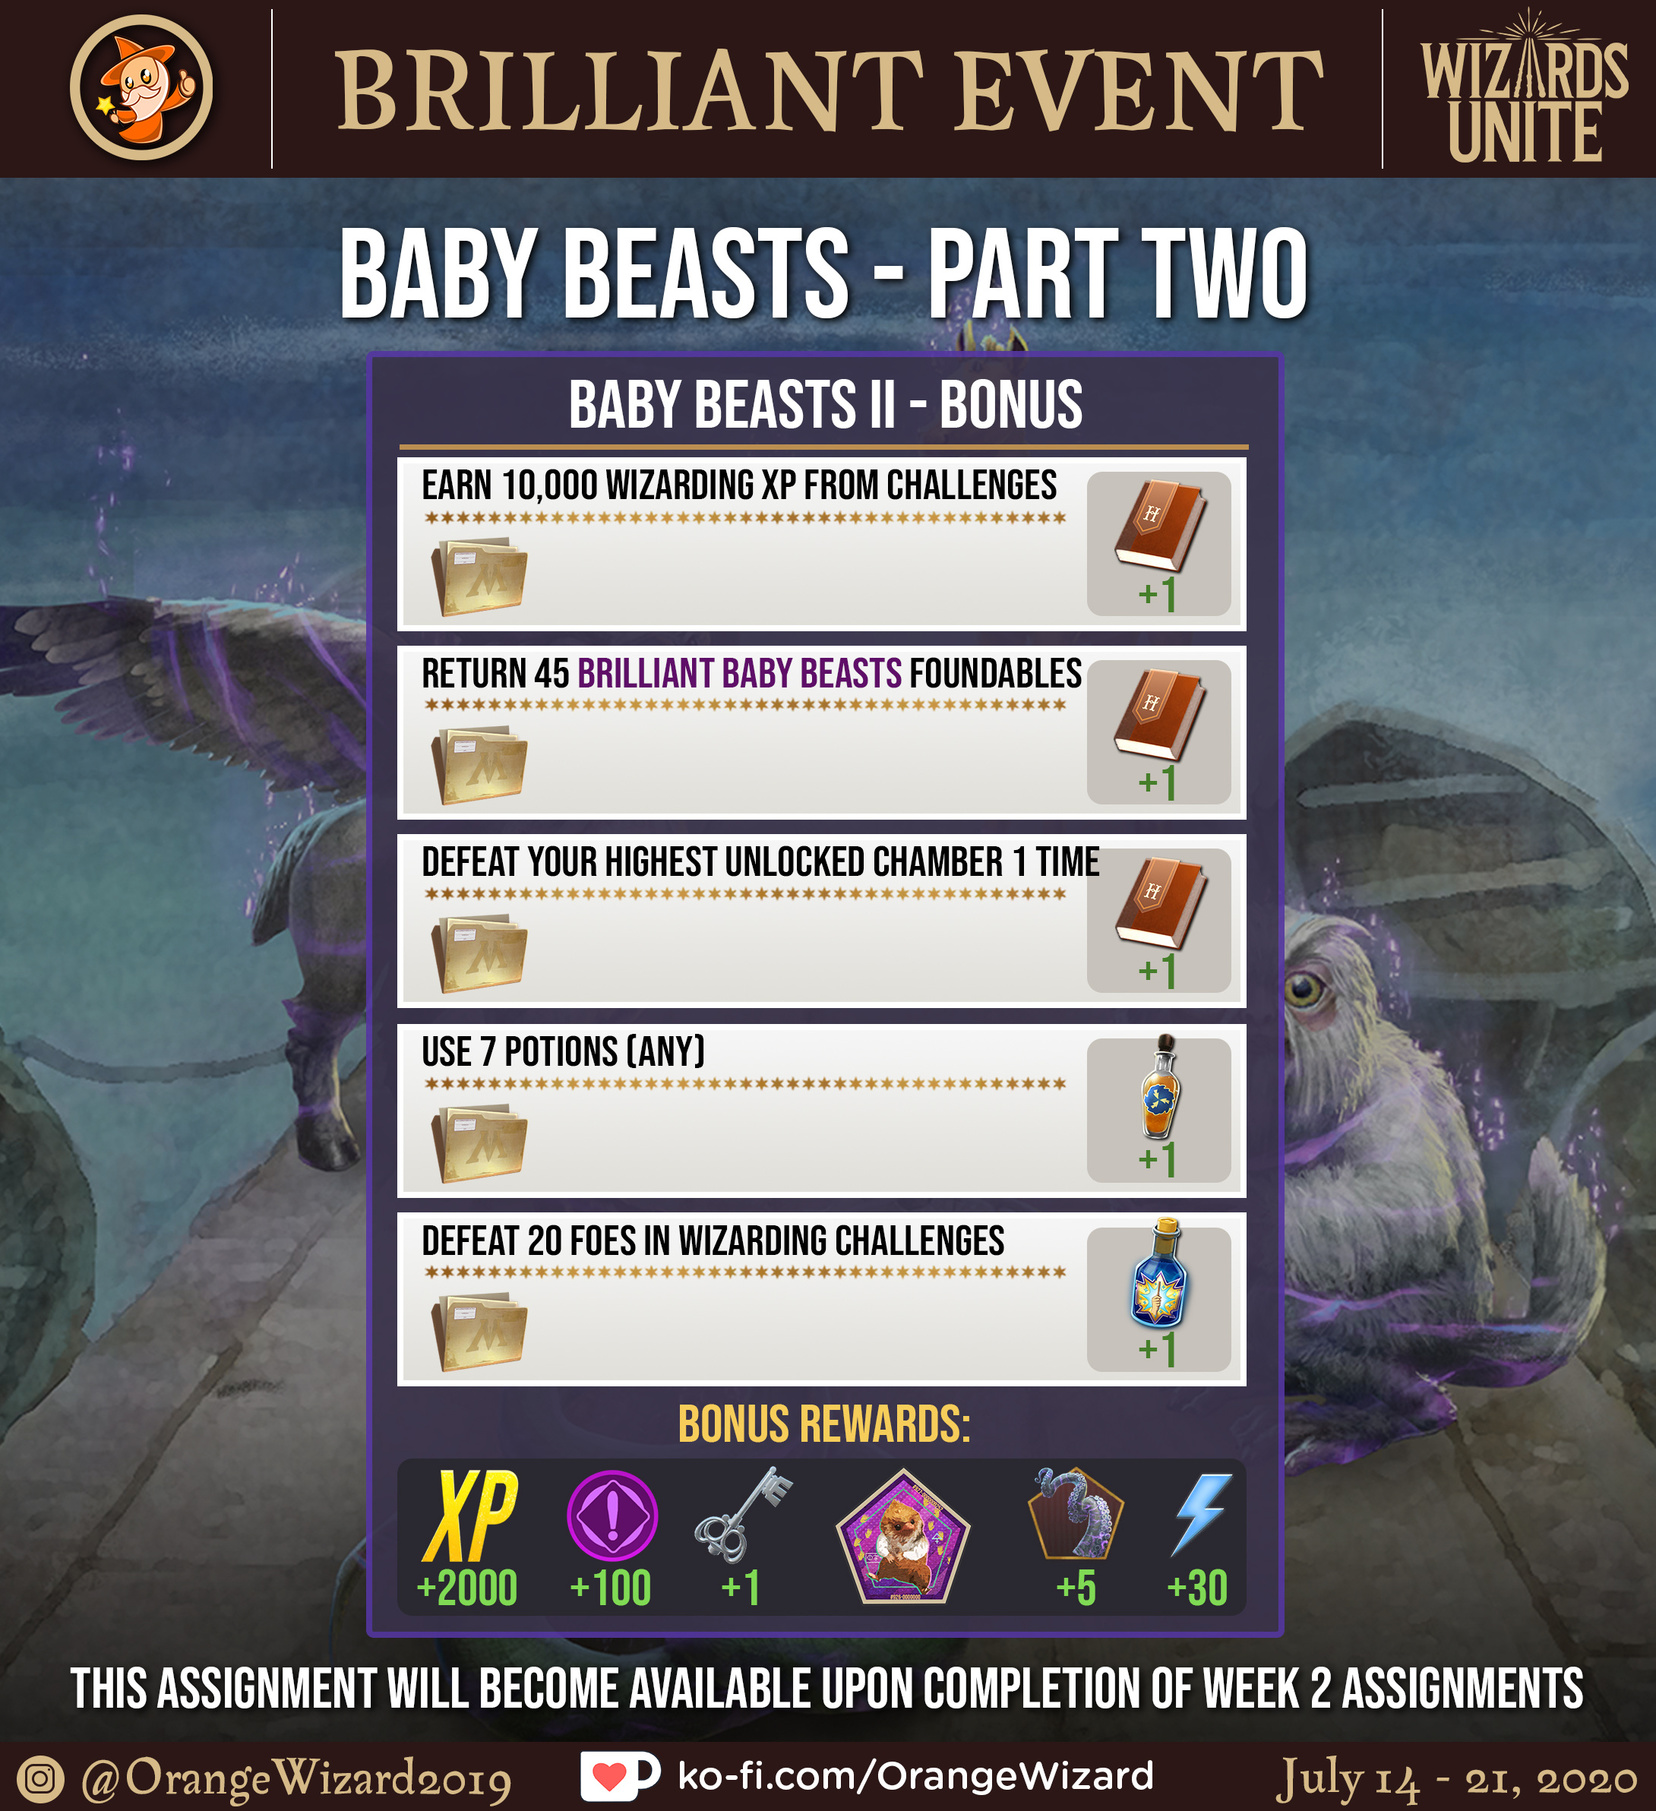 BRILLIANT_EVENT_-_BABY_BEASTS_II_-_BONUS_ASSIGNMENT.jpg